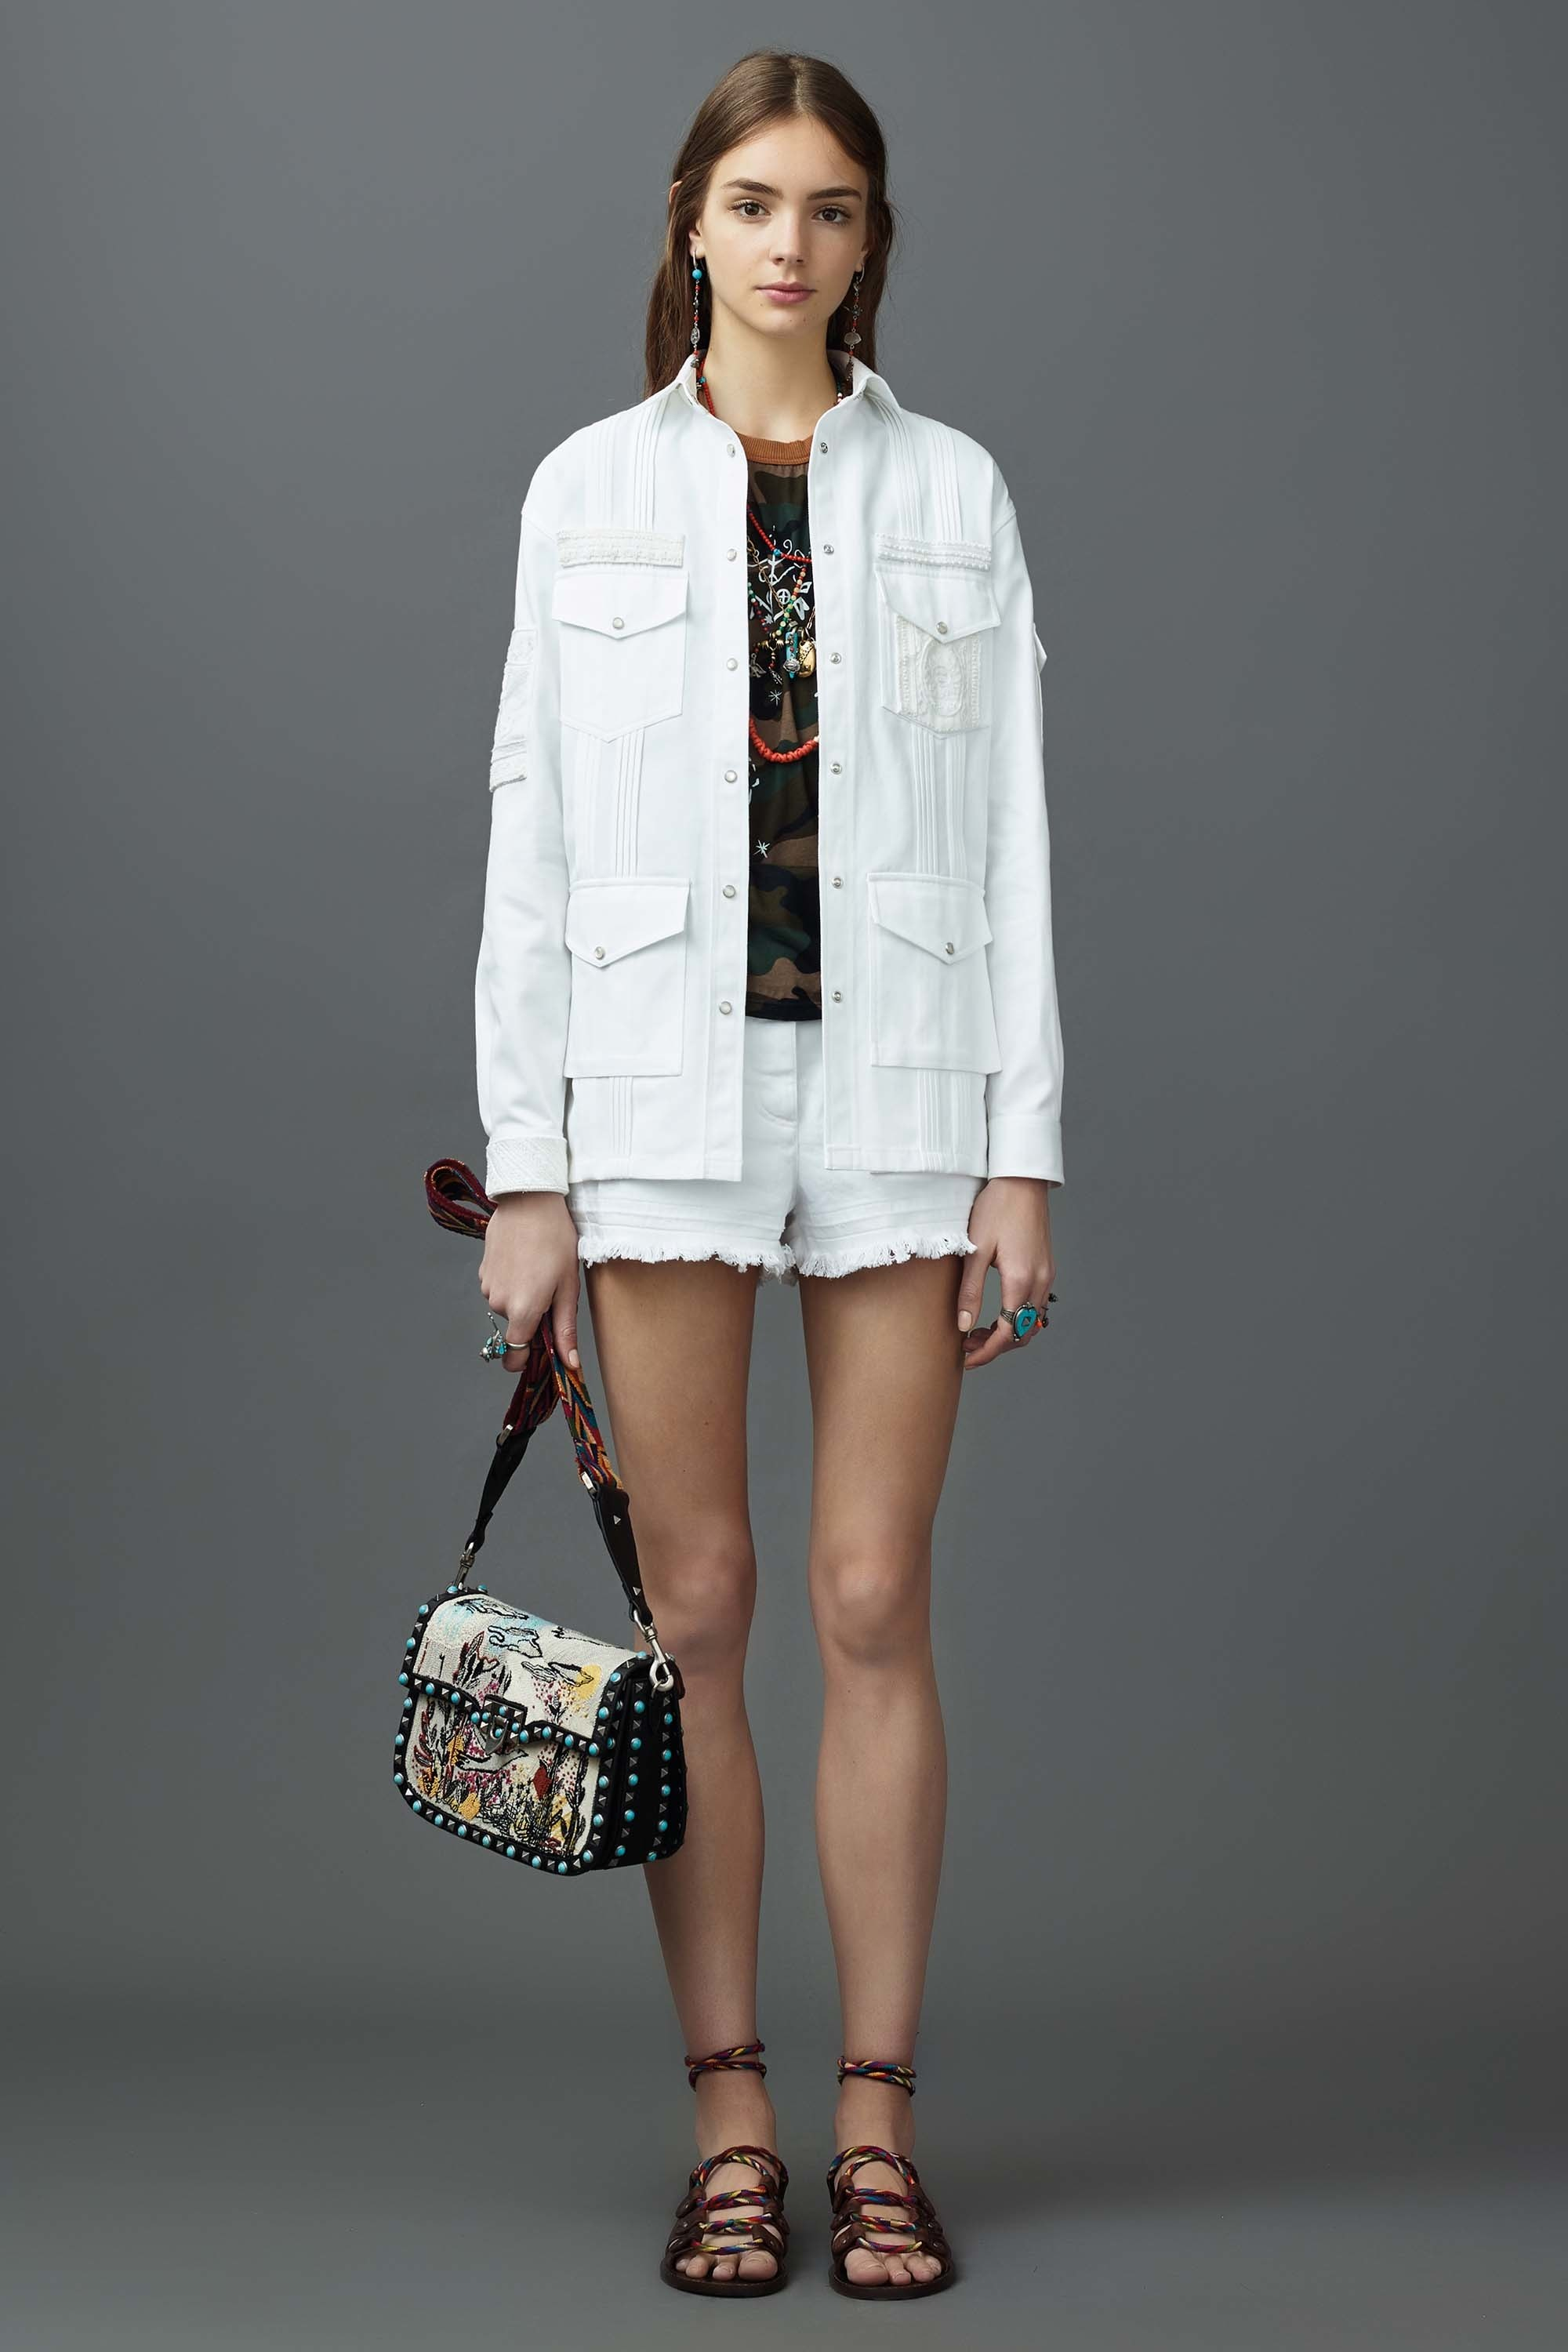 Valentino Resort 2017 How To Work Denim Shorts Summer 2017 | The Fashion Folks